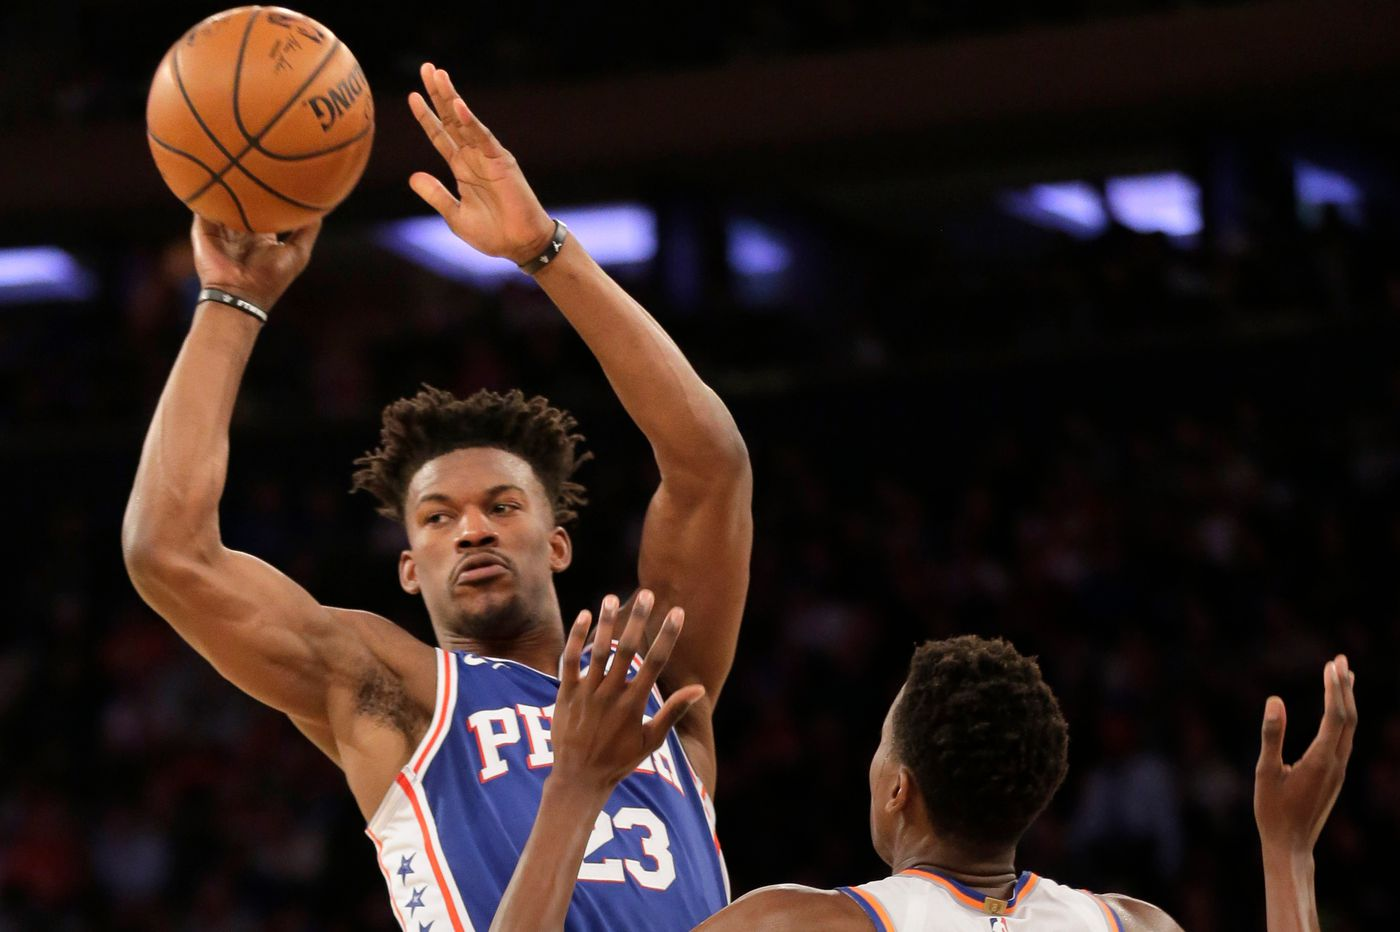 Sixers-Knicks observations: T.J. McConnell's grit and Joel Embiid's defense